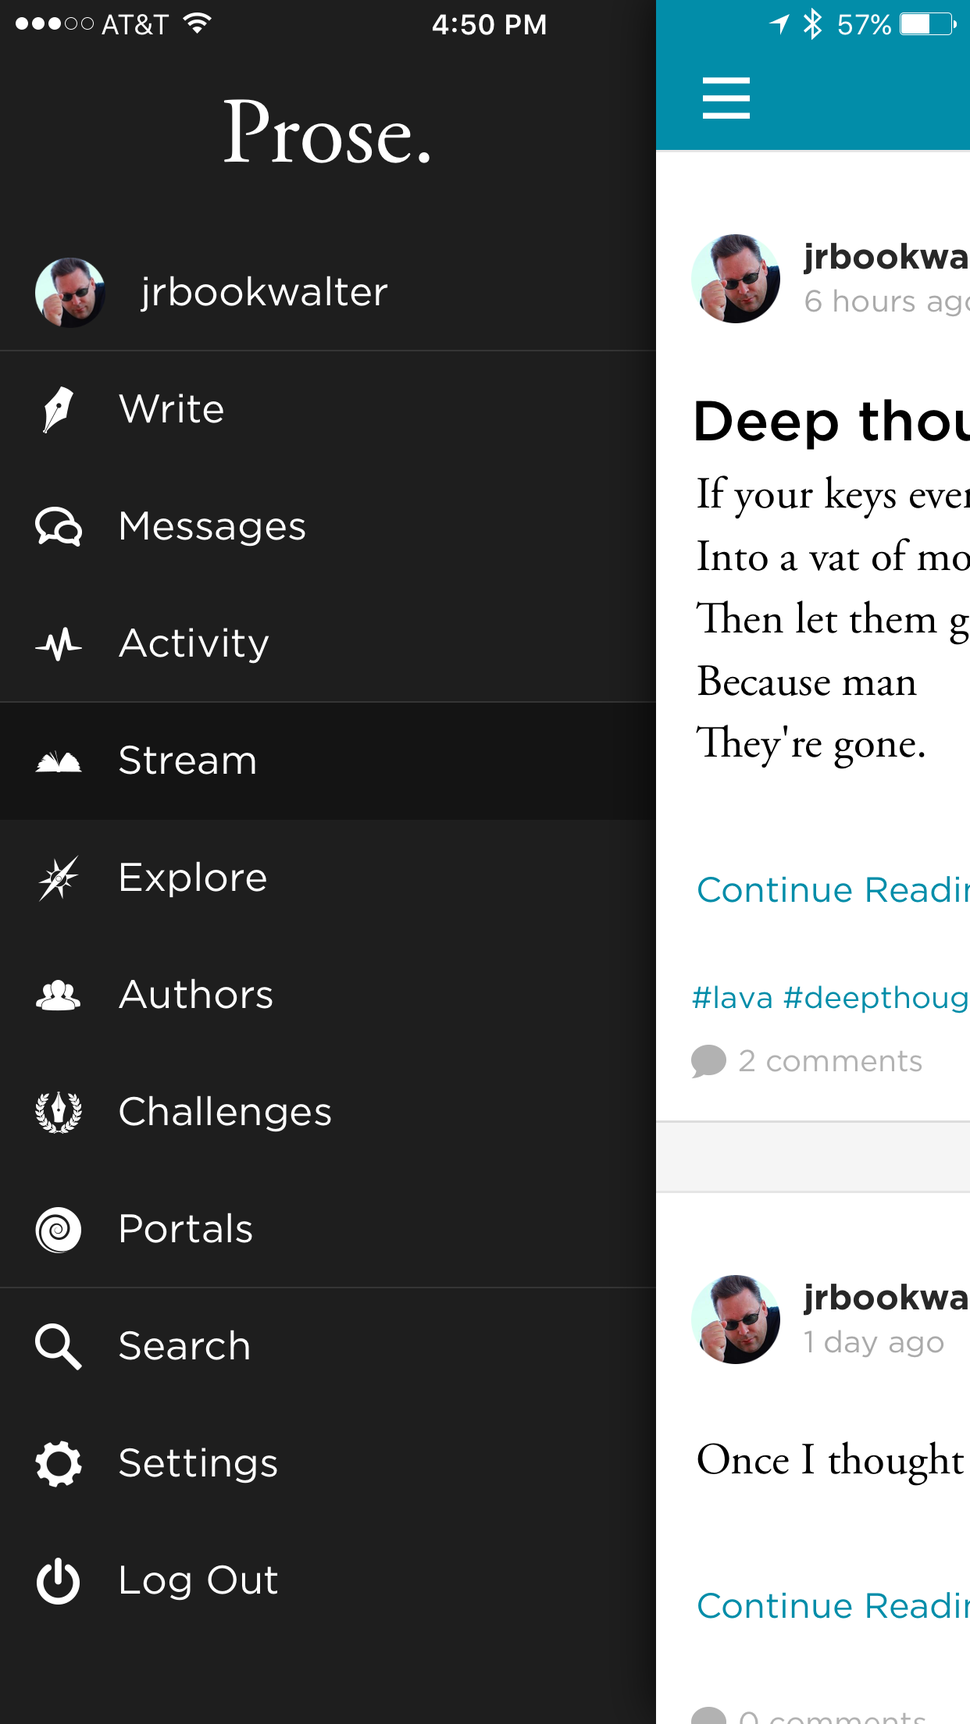 Prose. 3.0.2 review: Safe haven for writers, far from ...